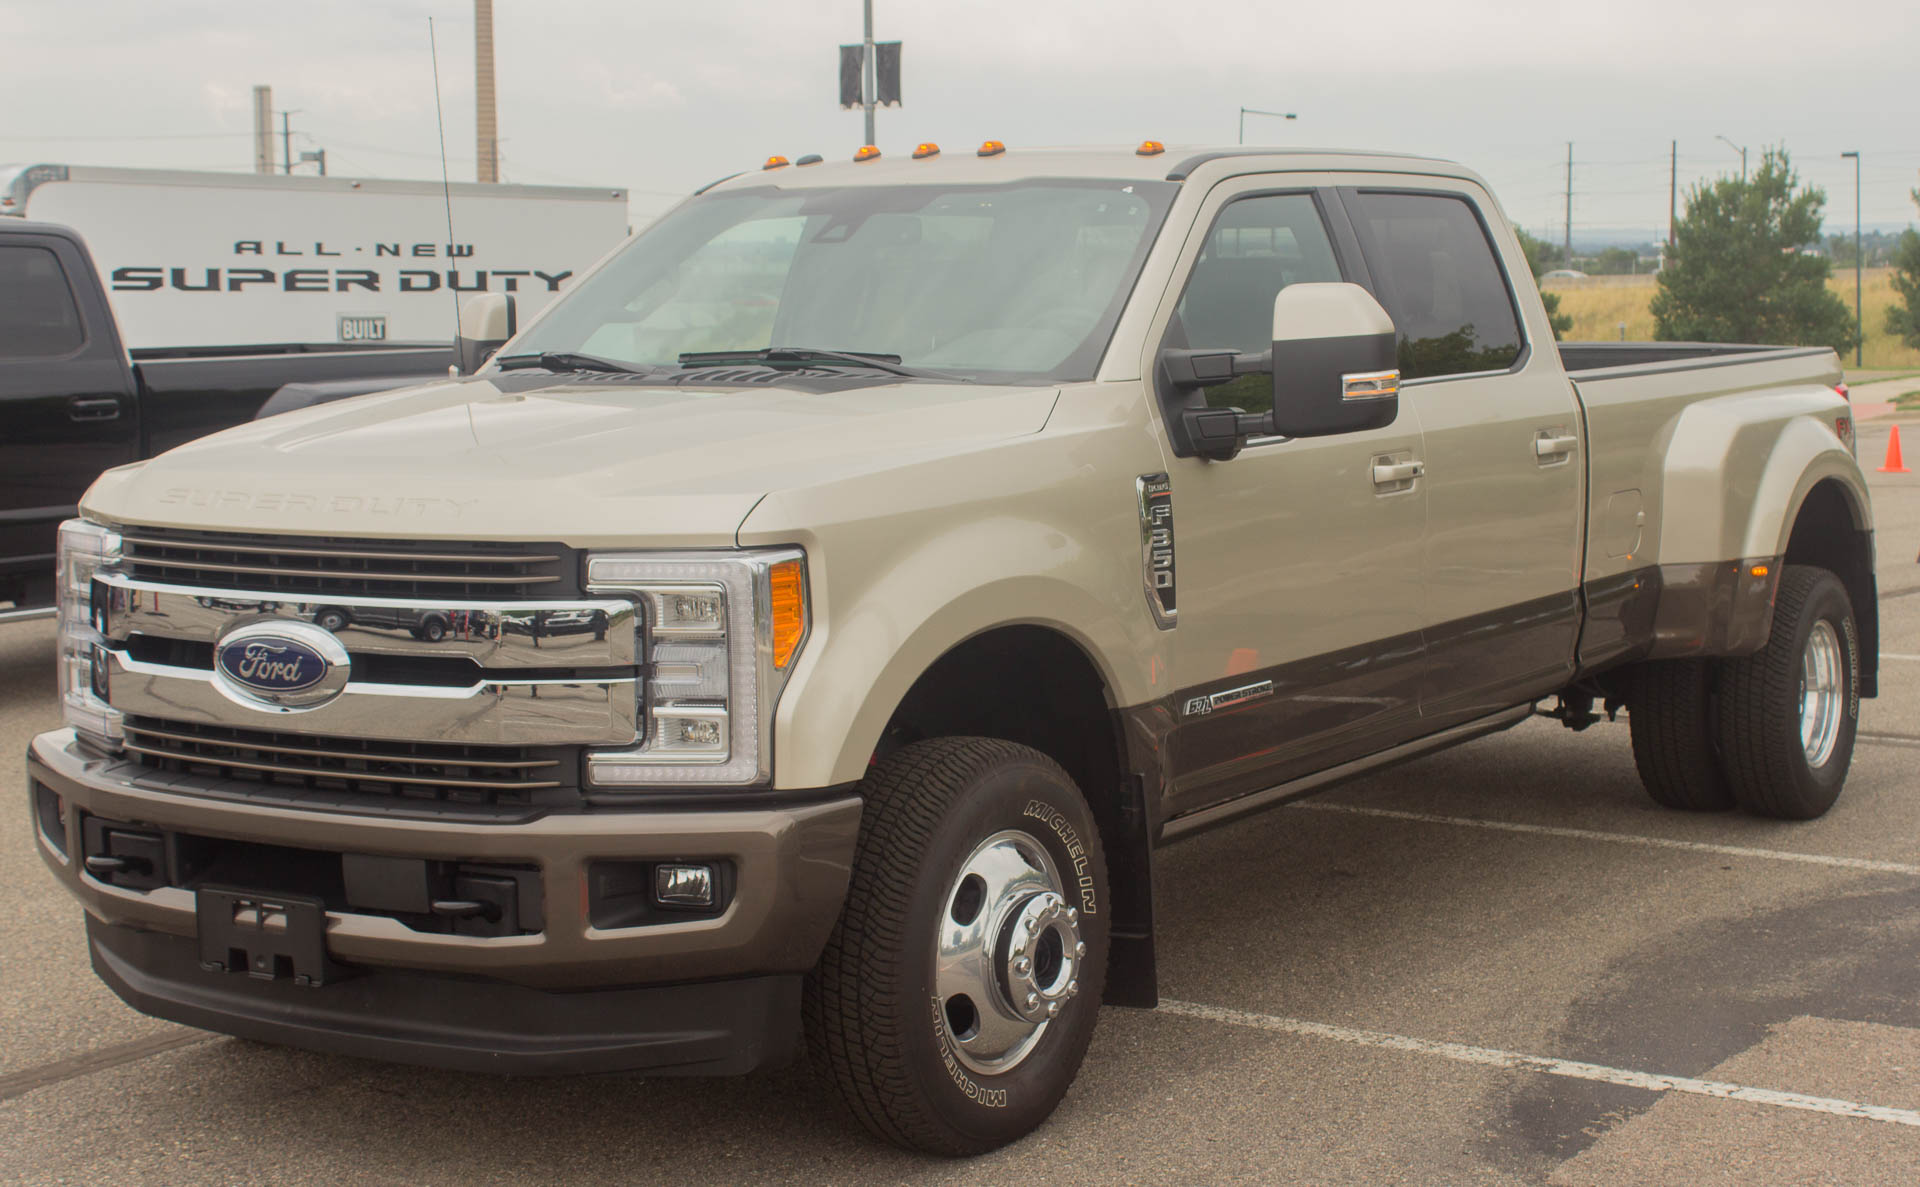 Does it matter that the new 2017 Ford Super Duty is aluminum like